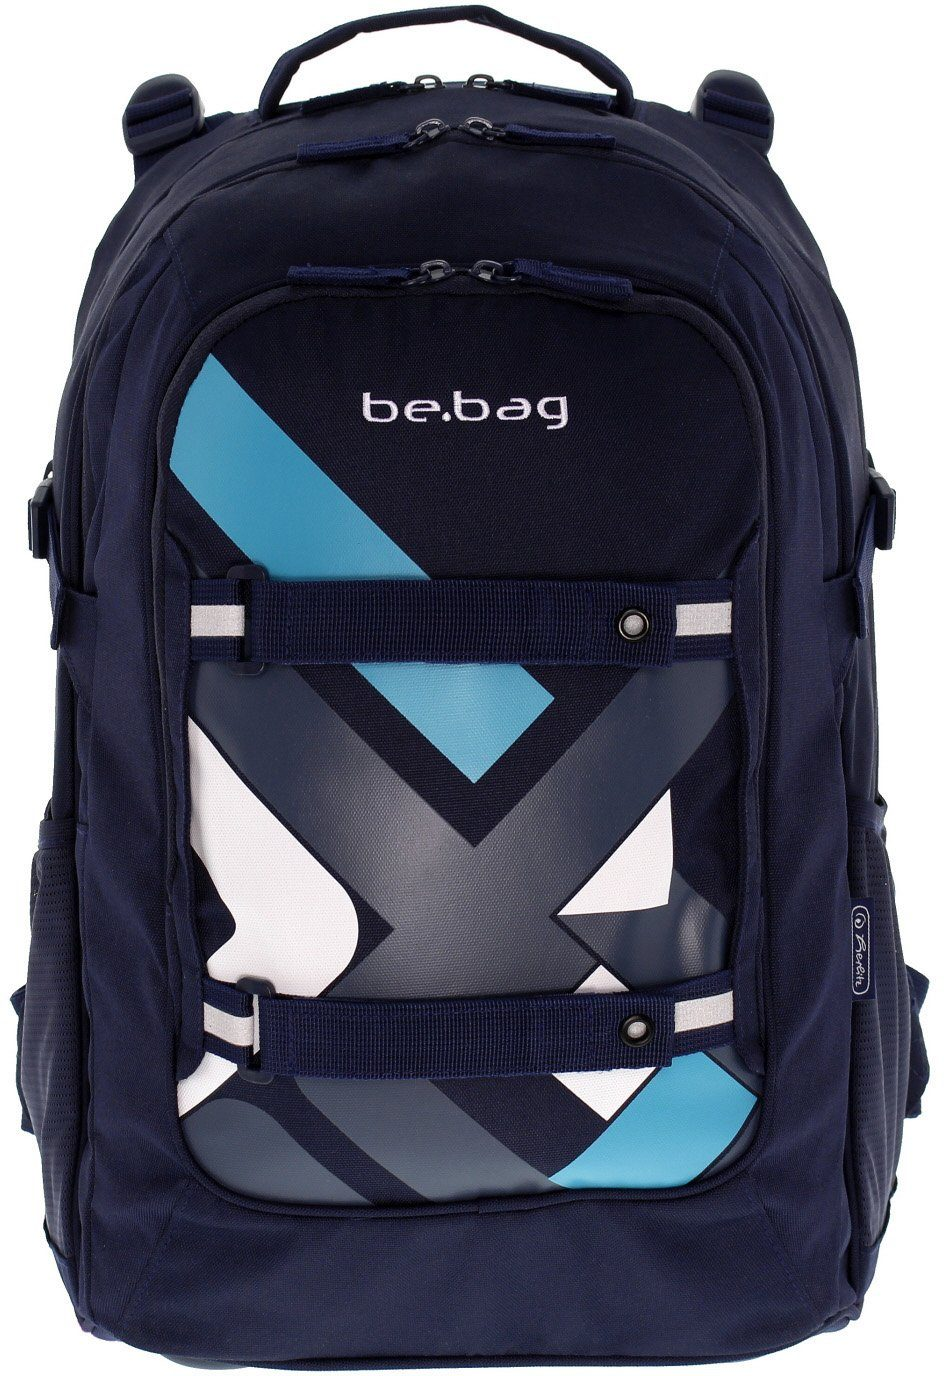 Herlitz Schulrucksack, »be.bag beat, Crossing«